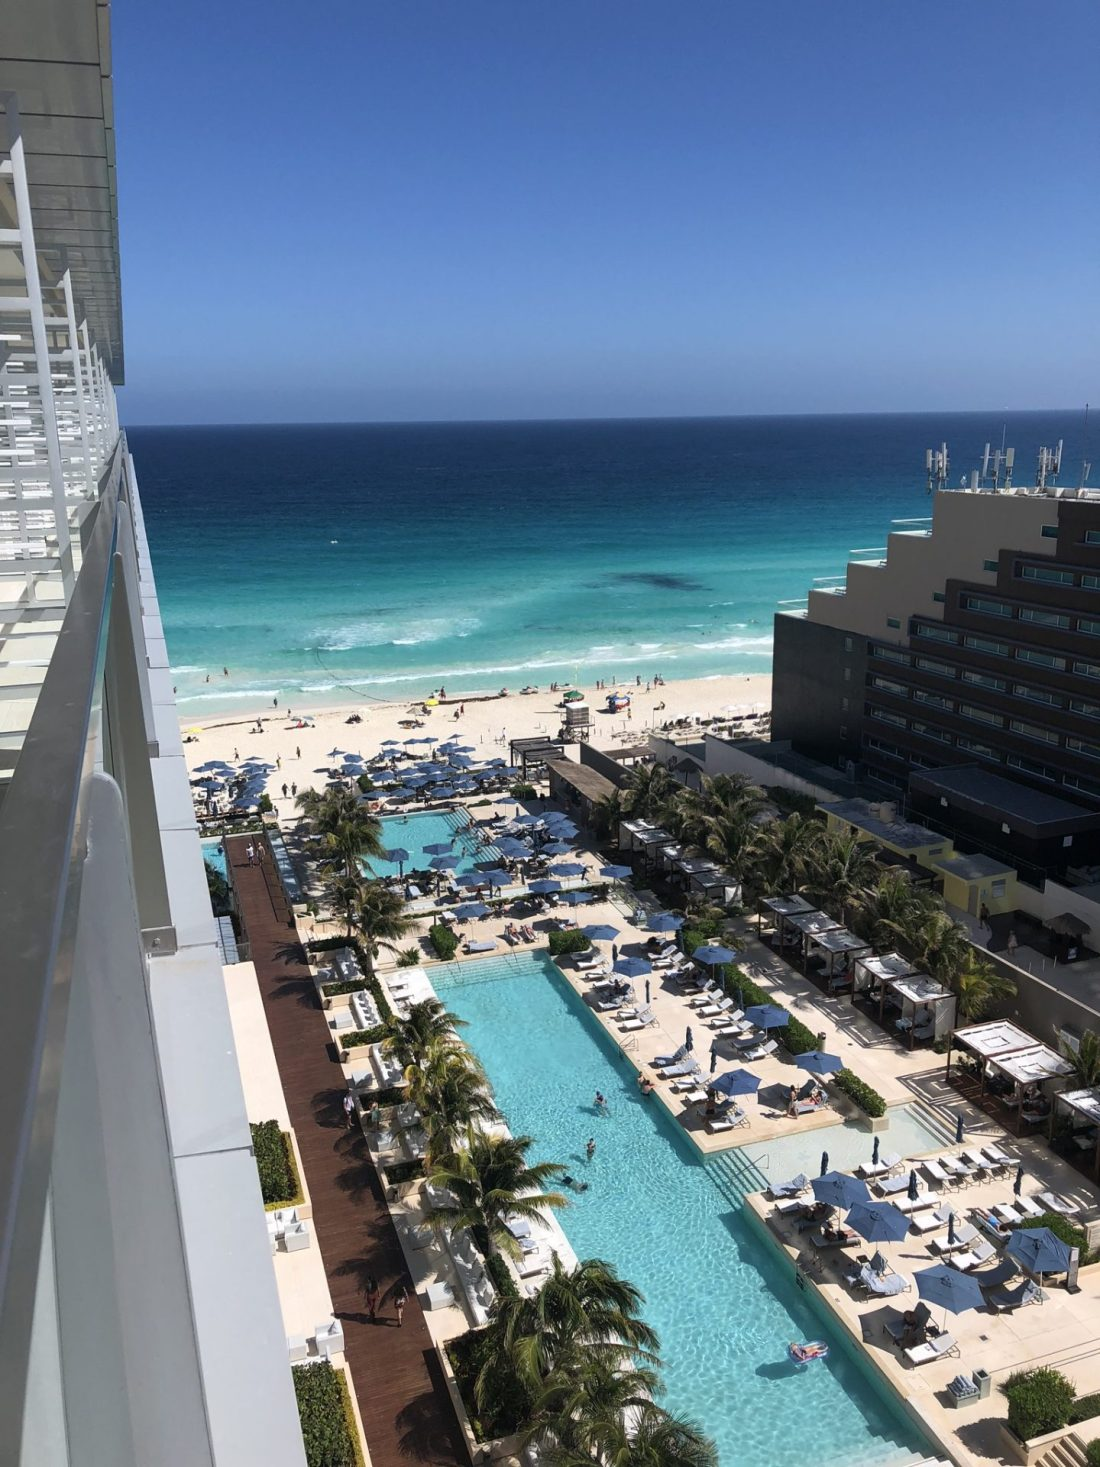 Ocean view from our room in Cancun